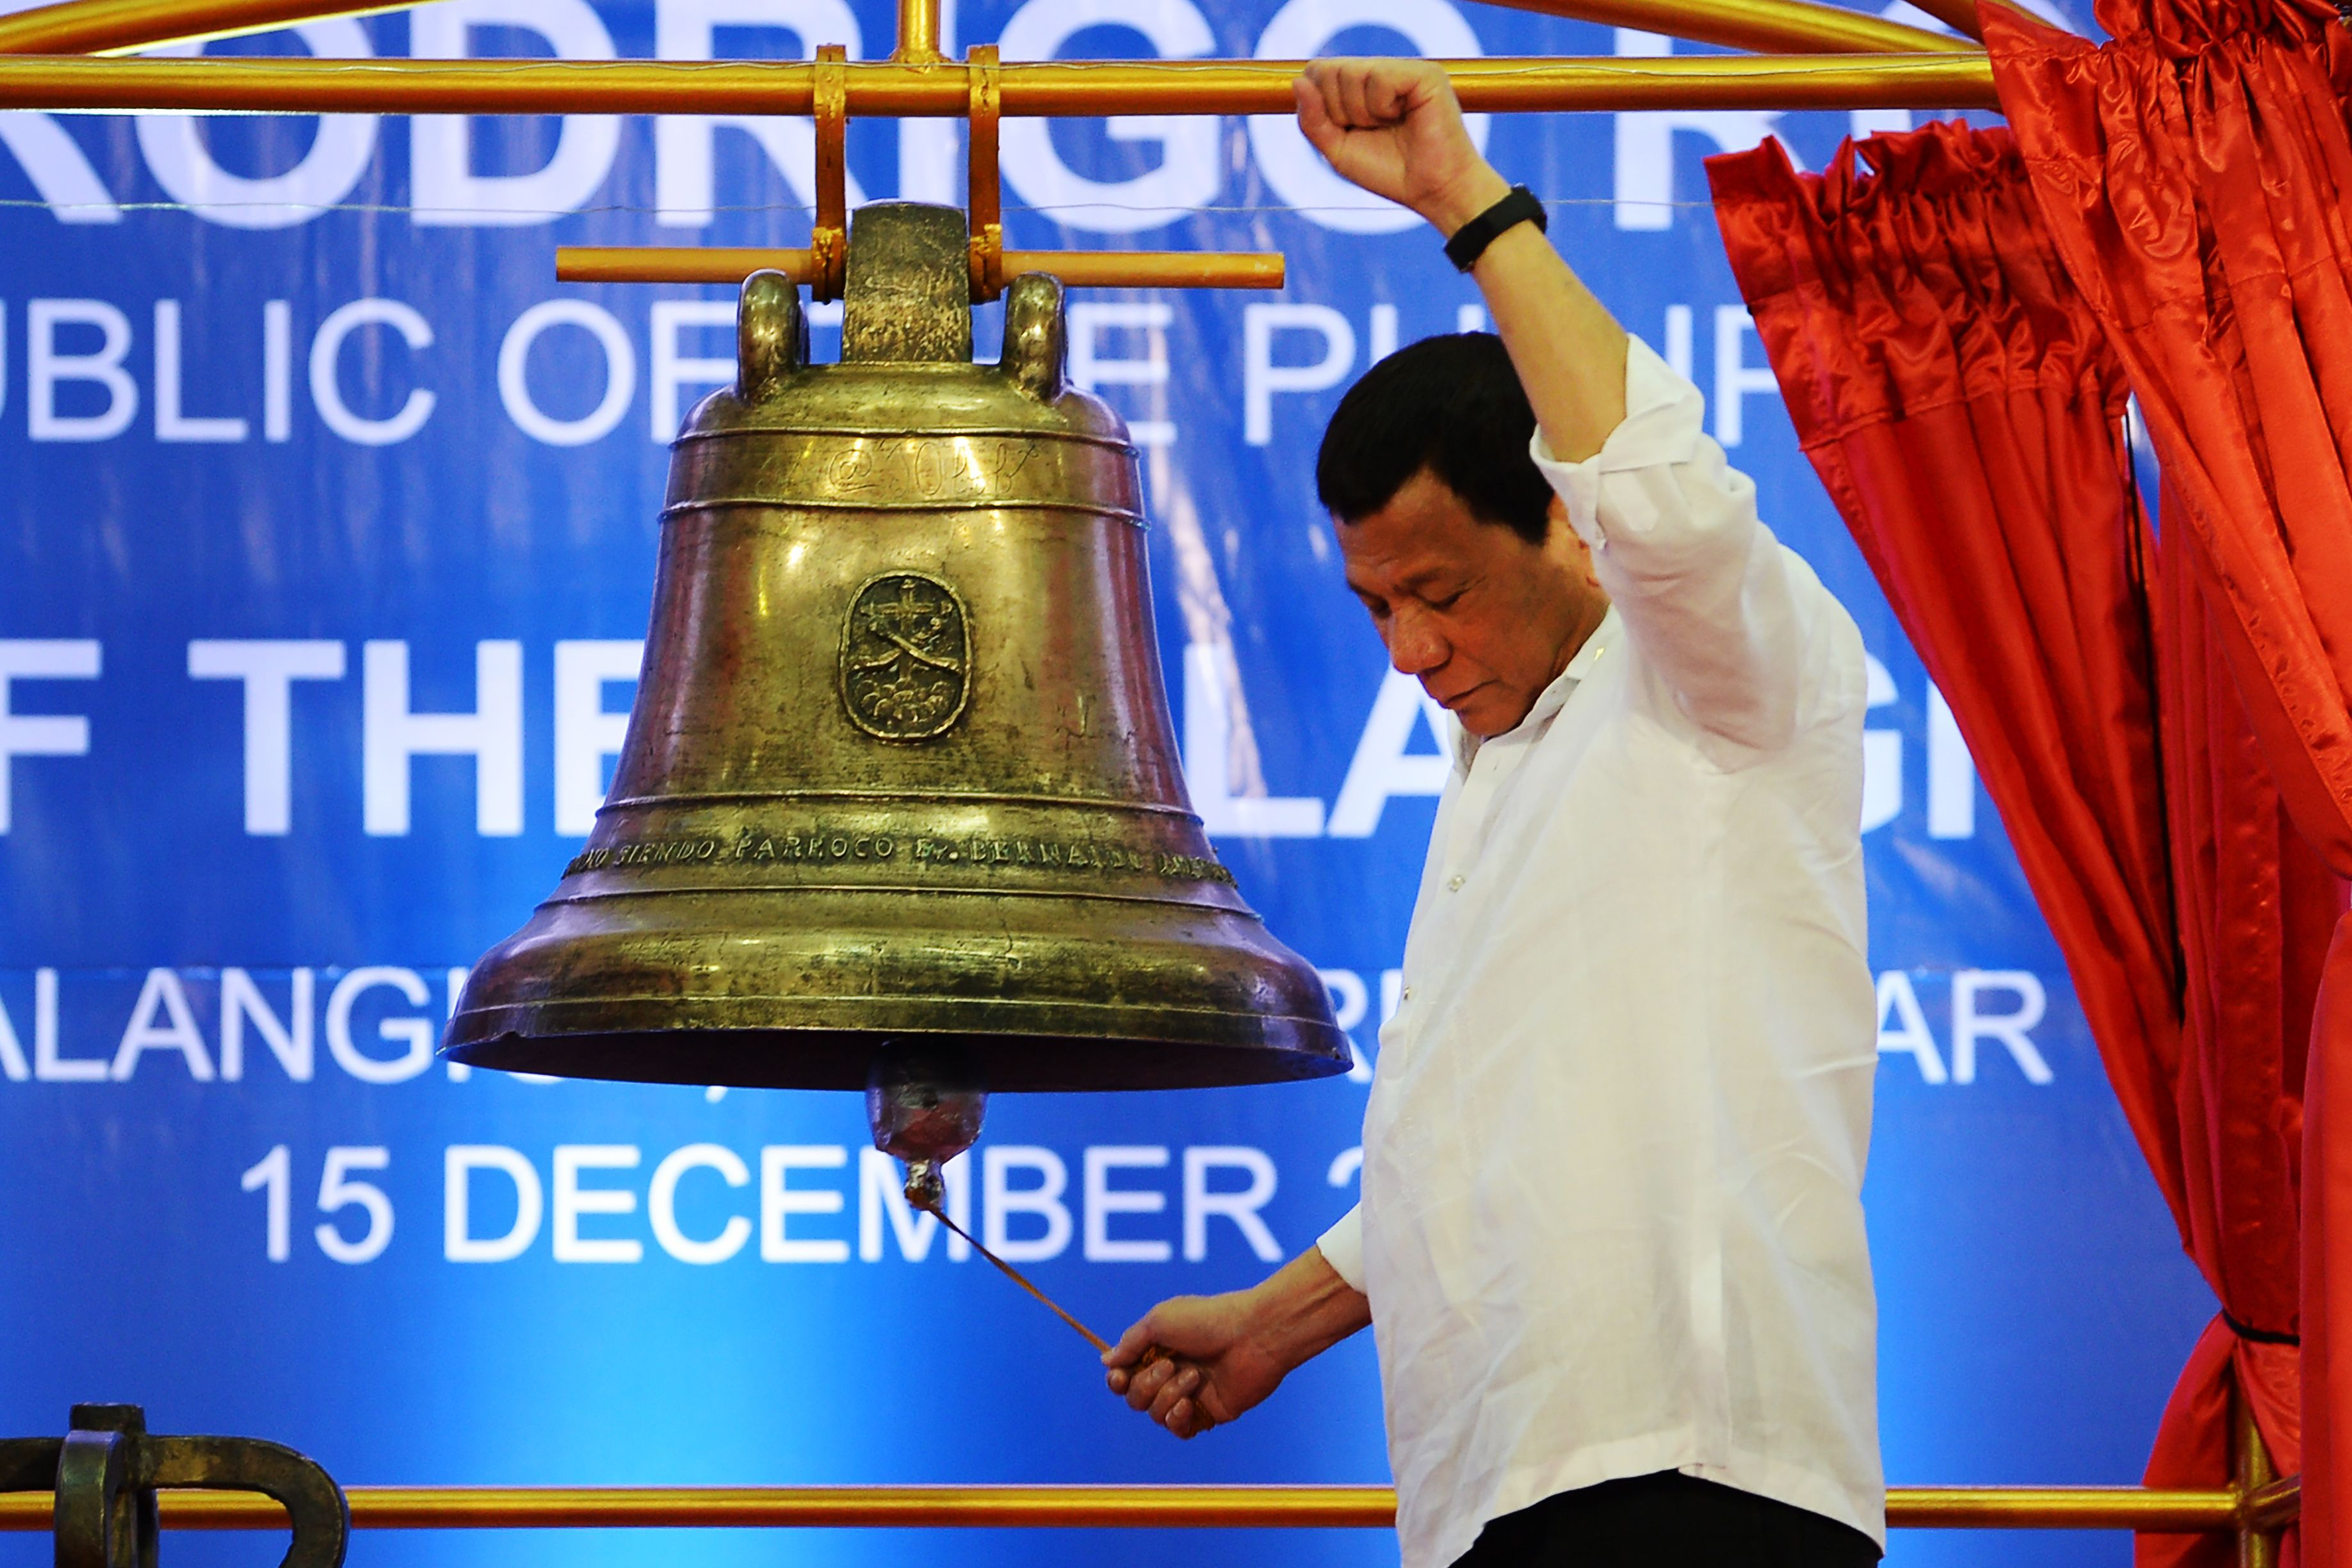 Philippine President Rodrigo Duterte raises a clenched fist as he rings one of the three Balangiga church bells during a ceremony in Balangiga in Eastern Samar province on December 15, 2018. (TED ALJIBE/AFP/Getty Images)